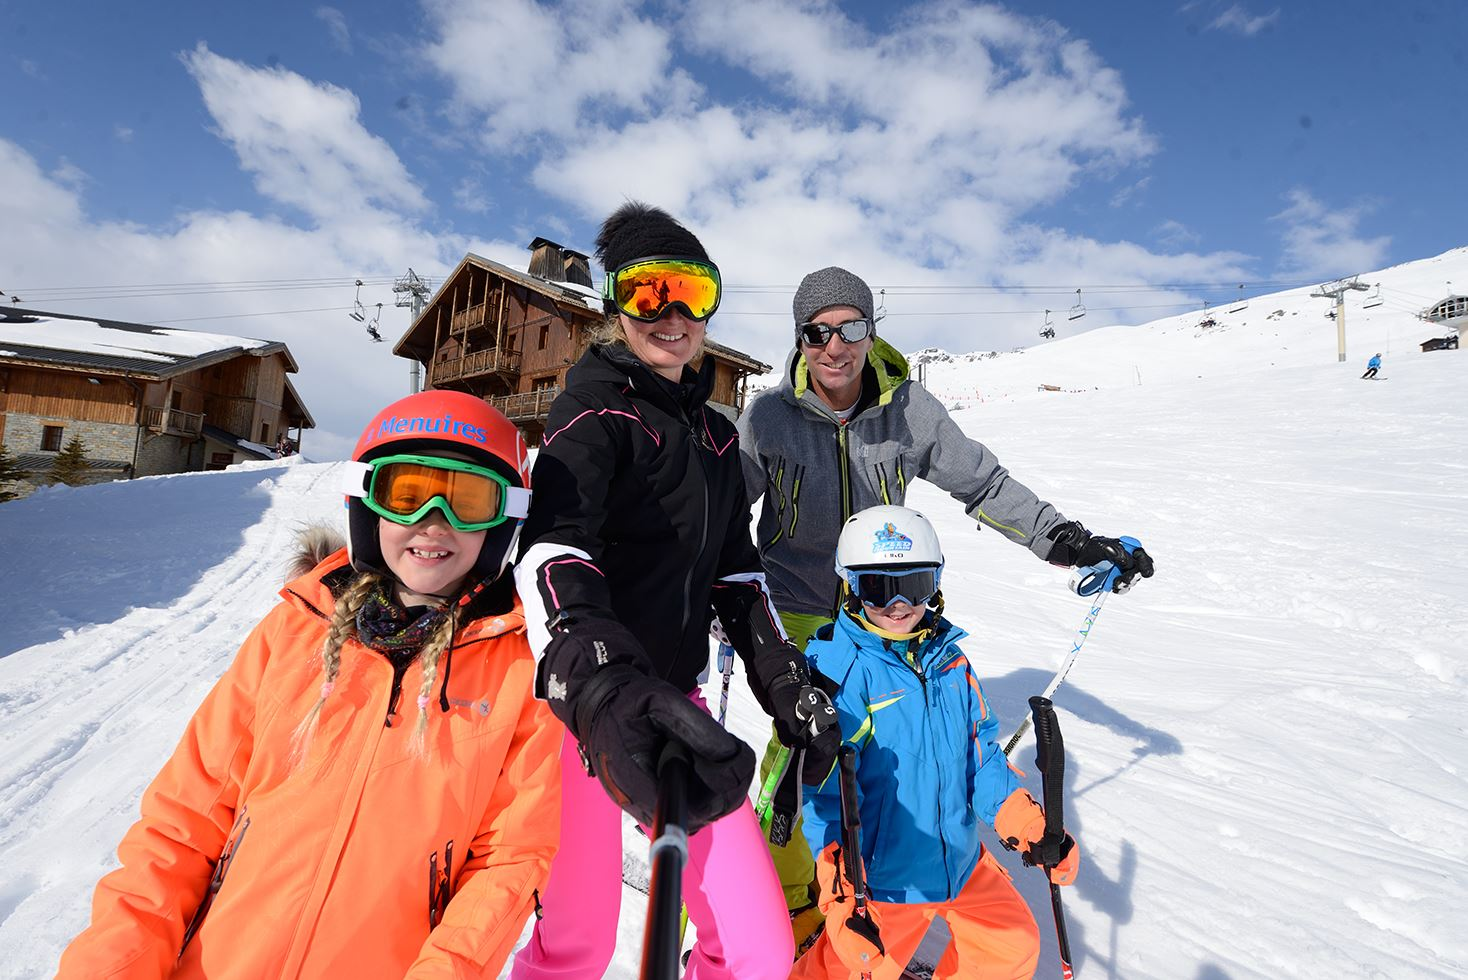 Family Pass: child price for all of you (2 adults + minimum2 children 5-17 years) - (Les 3 vallées extra cost next step), click here to know the periods of validity